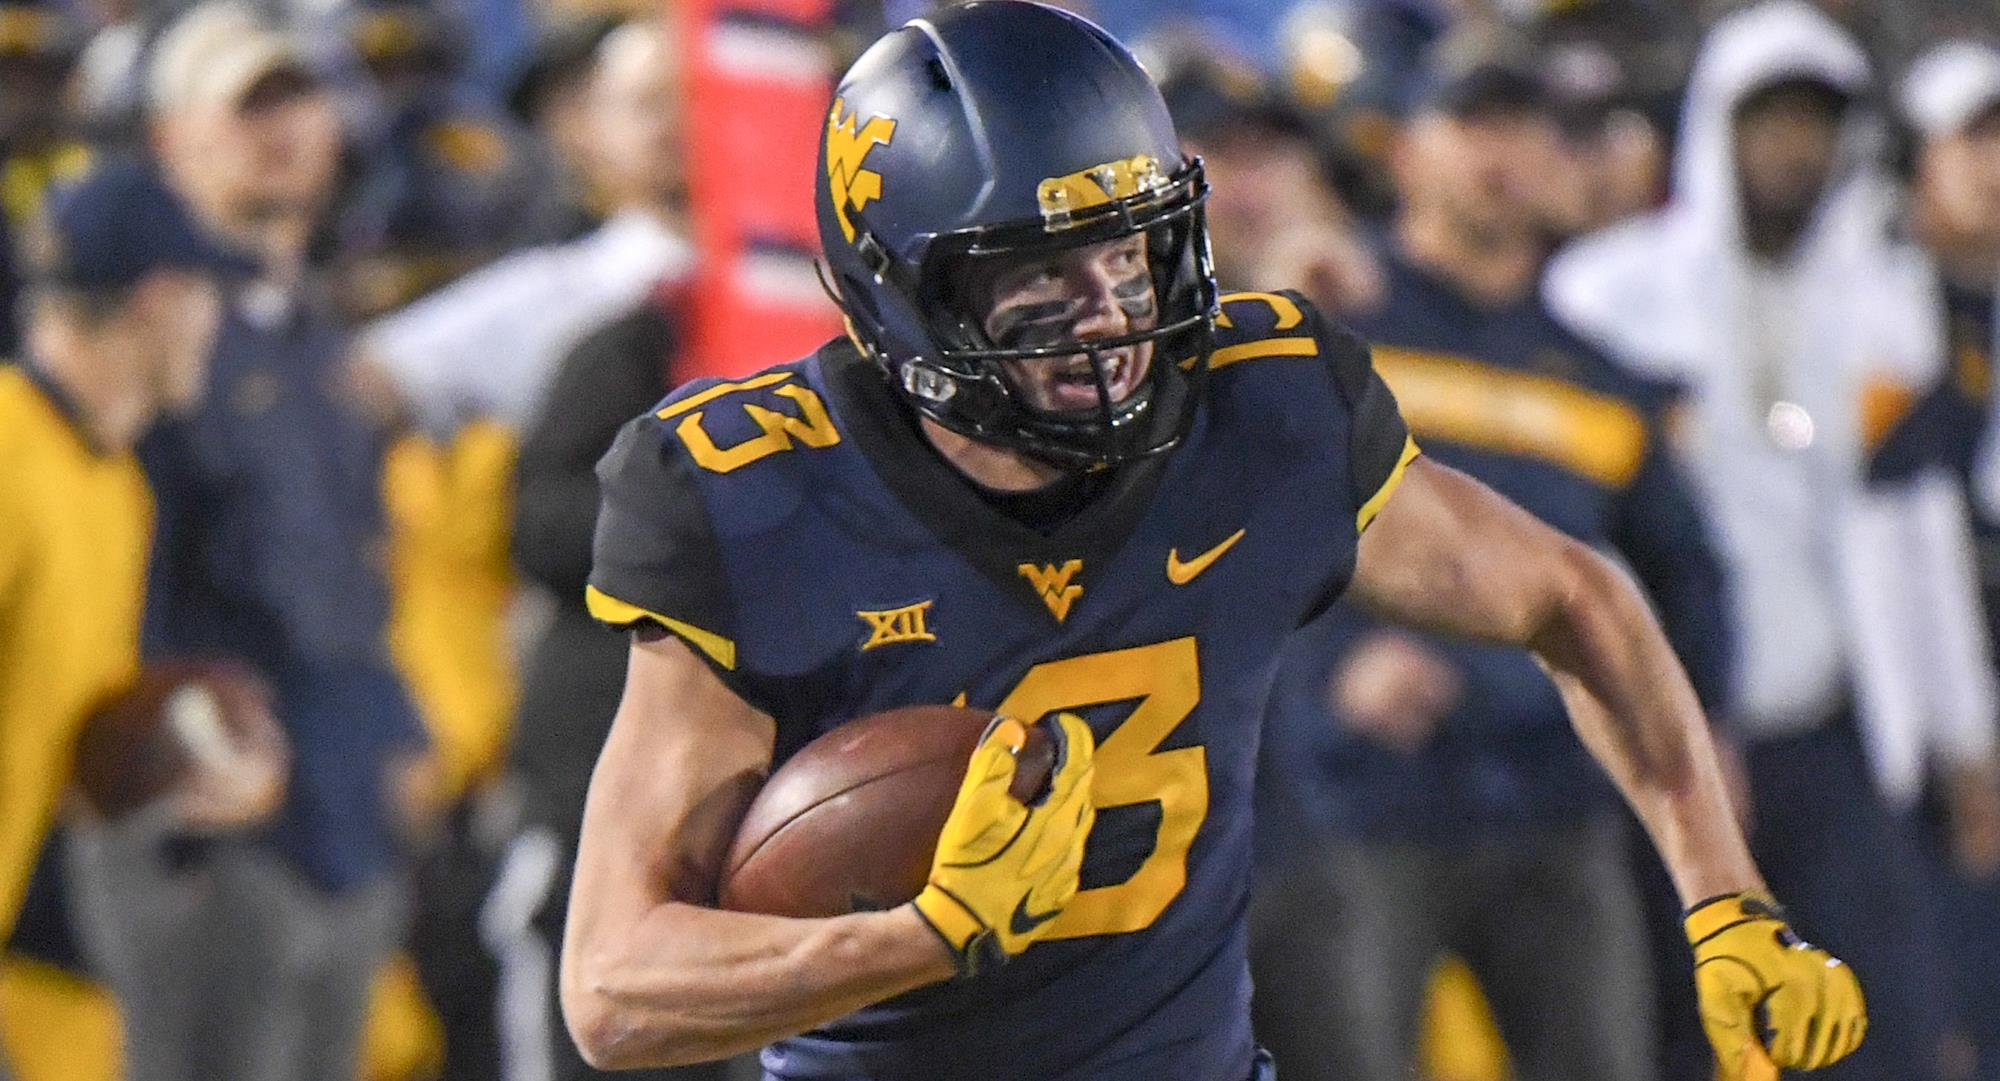 David Sills V Football West Virginia University Athletics